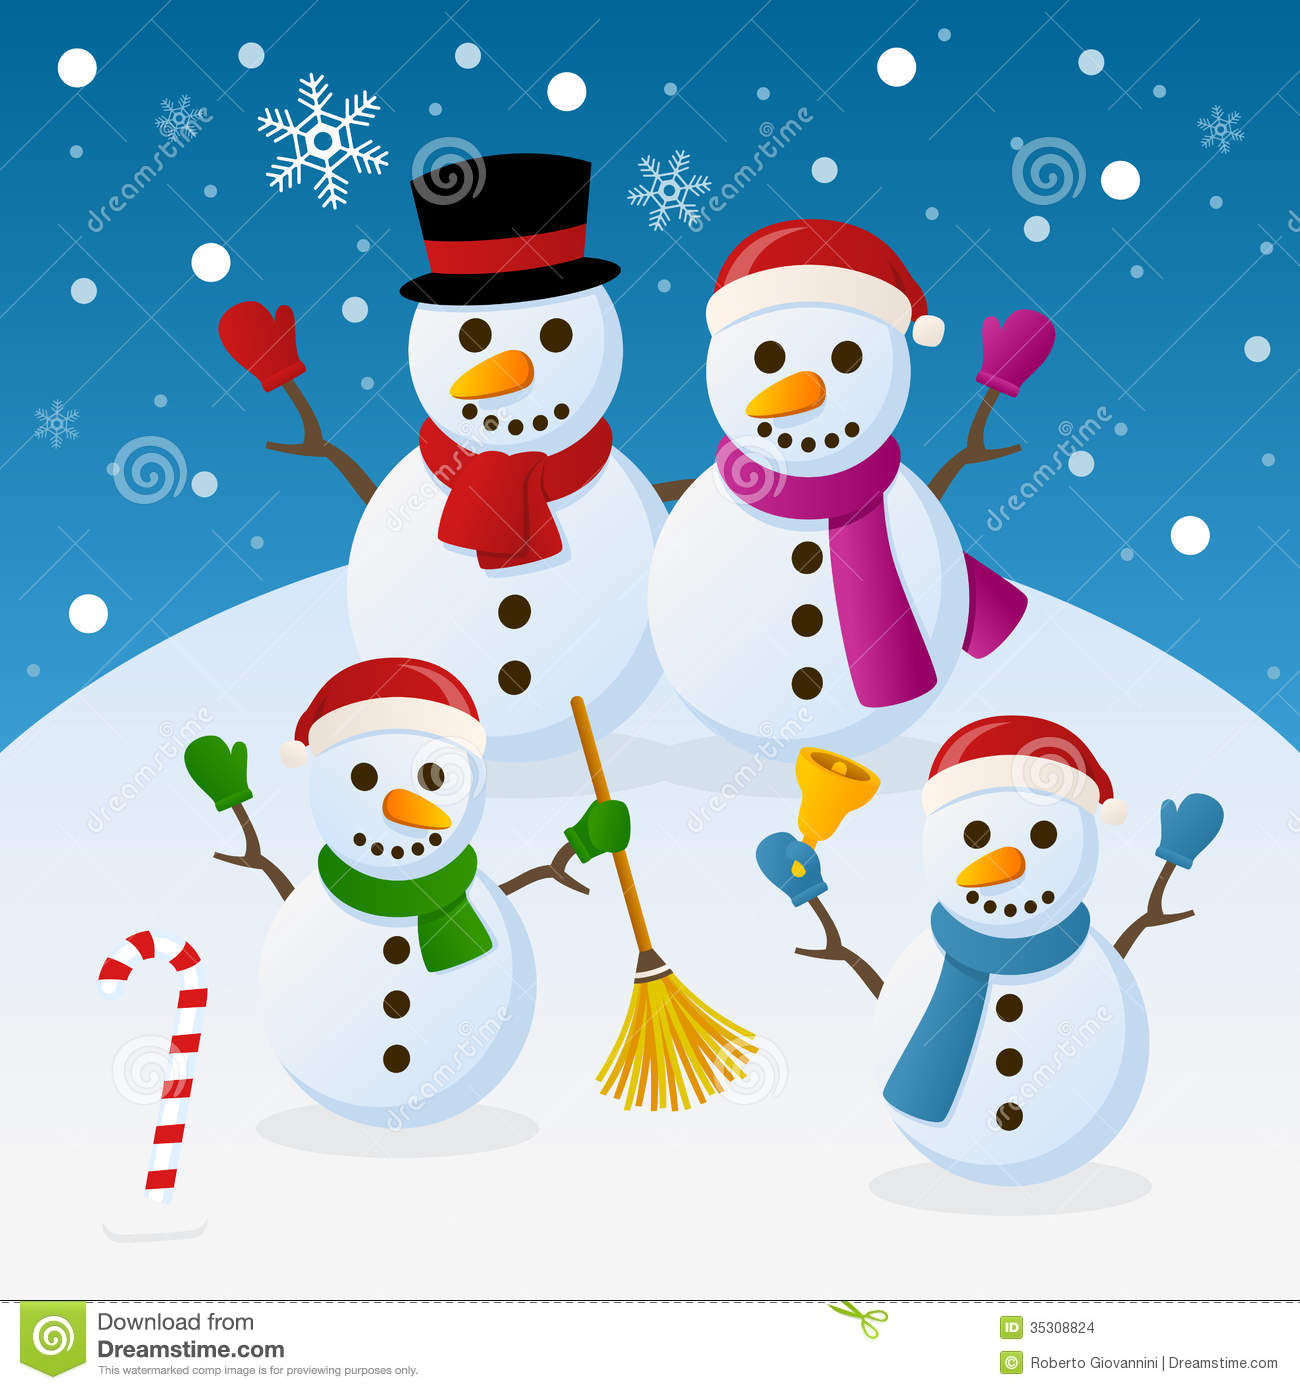 Image result for winter holidays family cartoon free image